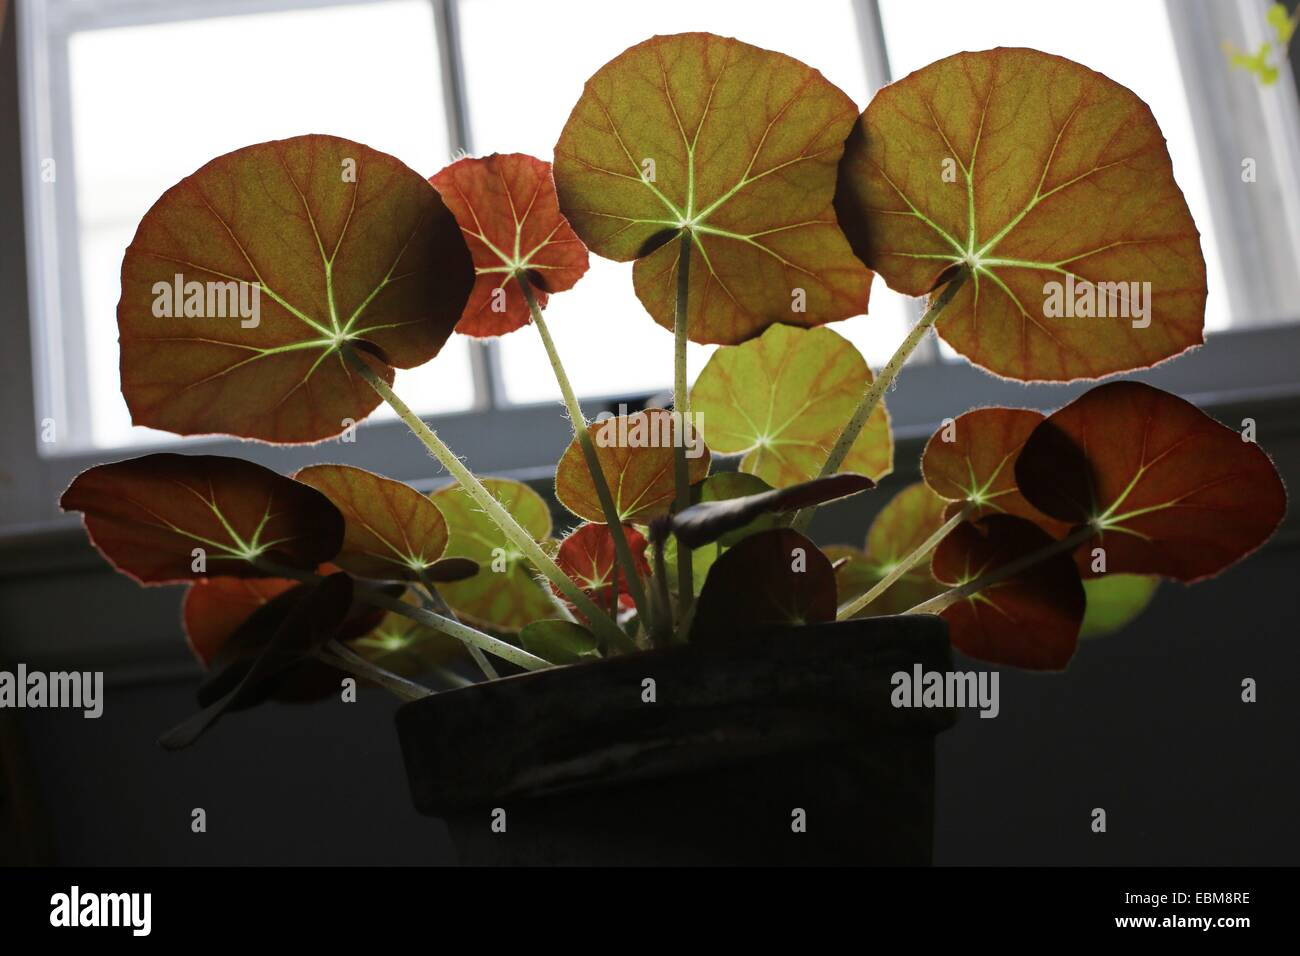 Sun shining through the leaves of a begonia house plant stock photo 76048658 alamy - Begonie zimmerpflanze ...